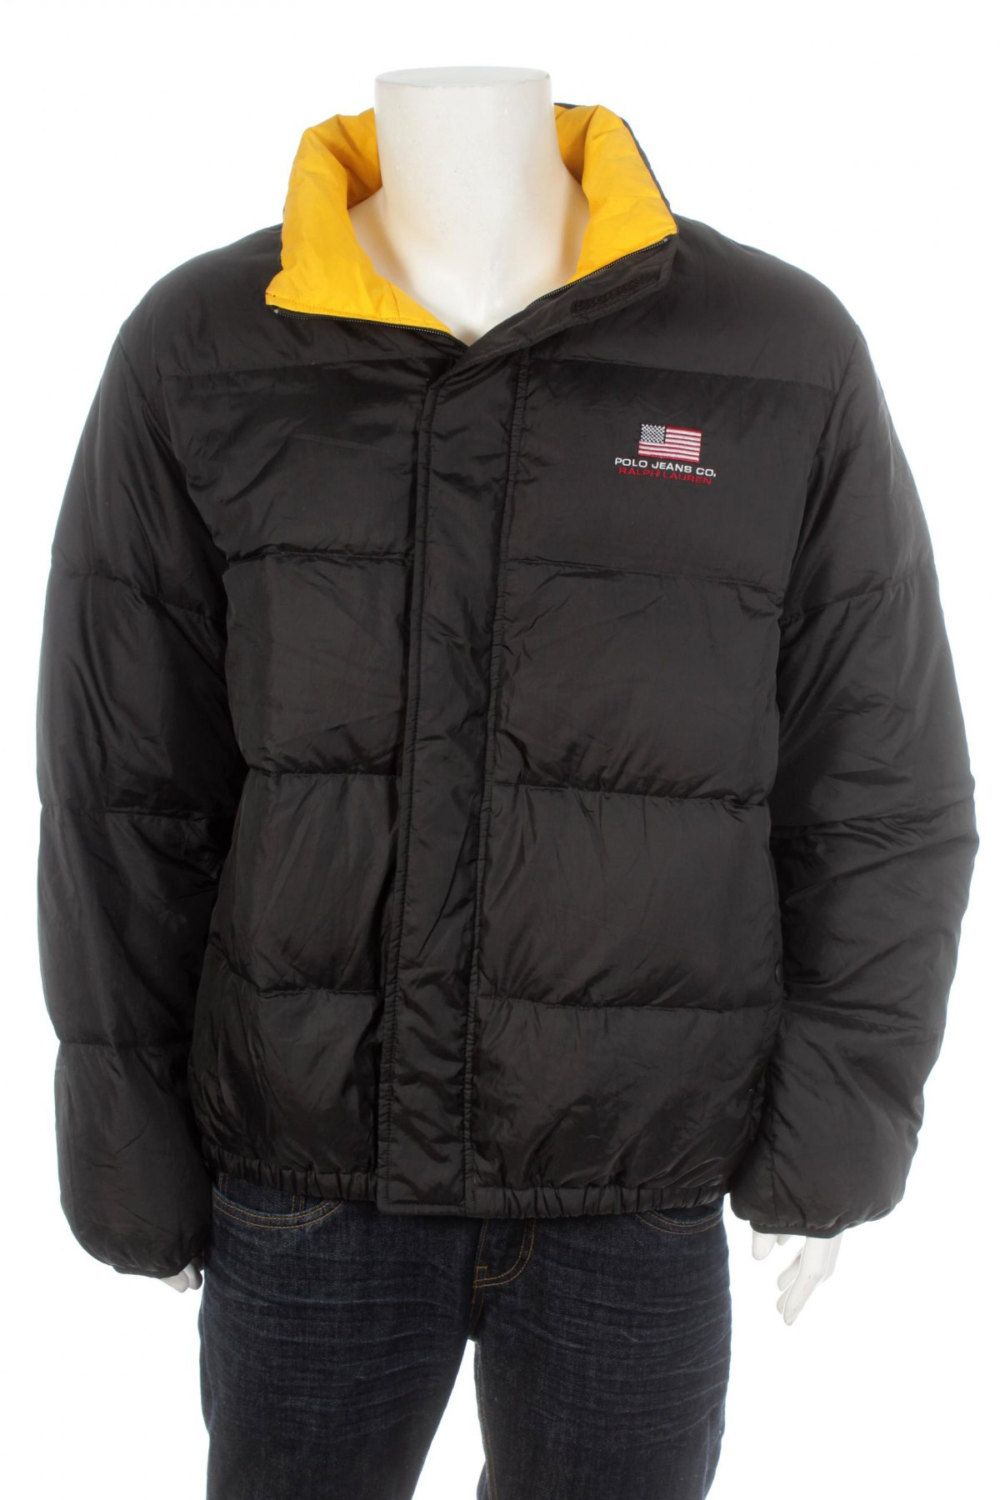 e3e571ac6 Vintage 90S Polo By Ralph Lauren Goose Down Puffer Jacket Black Size Xl by  VapeoVintage on